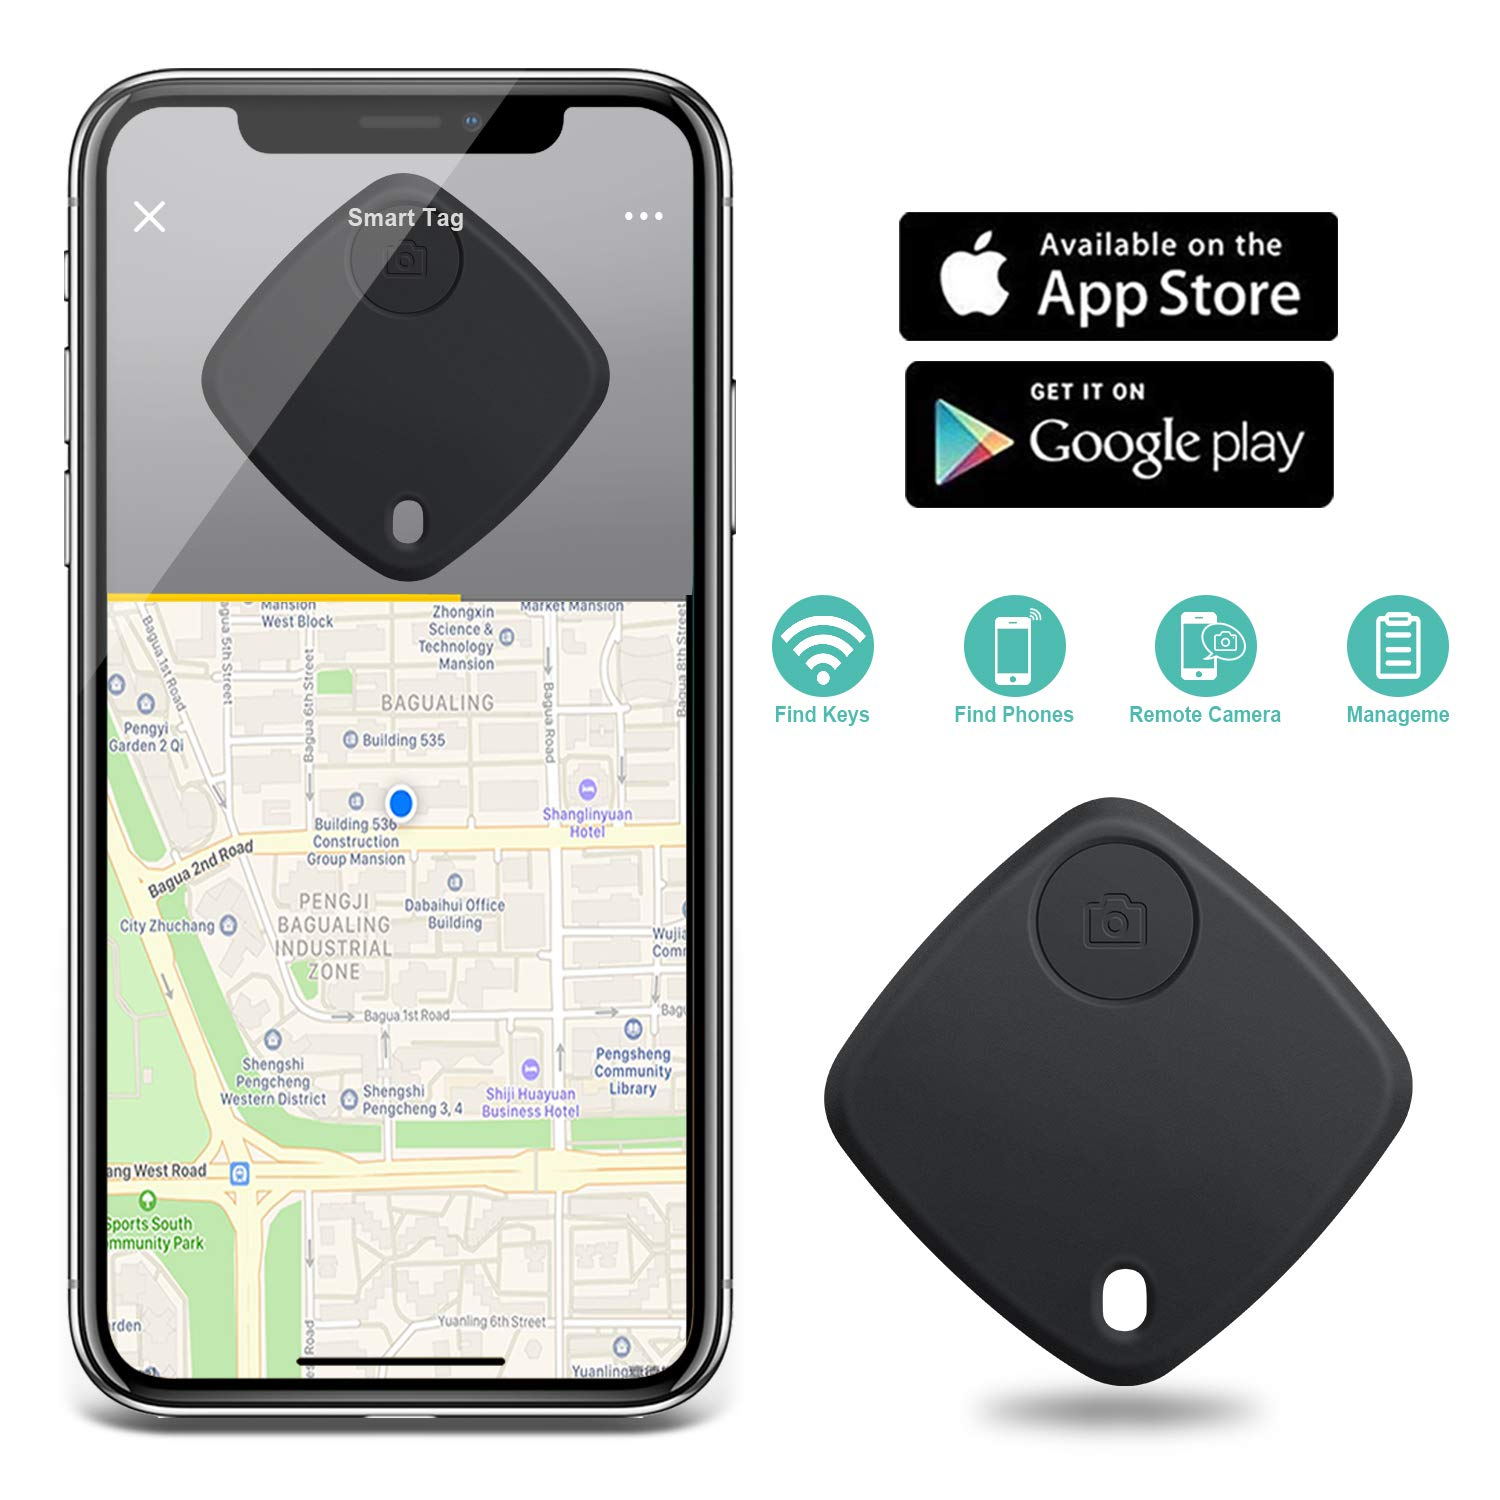 Iphone Gps Tracker >> Tbmax Smart Finder Locator Key Finder Bluetooth Gps Tracker With App Control For Phone Wallet Bag Luggage Compatible With Ios Android 2 Pack